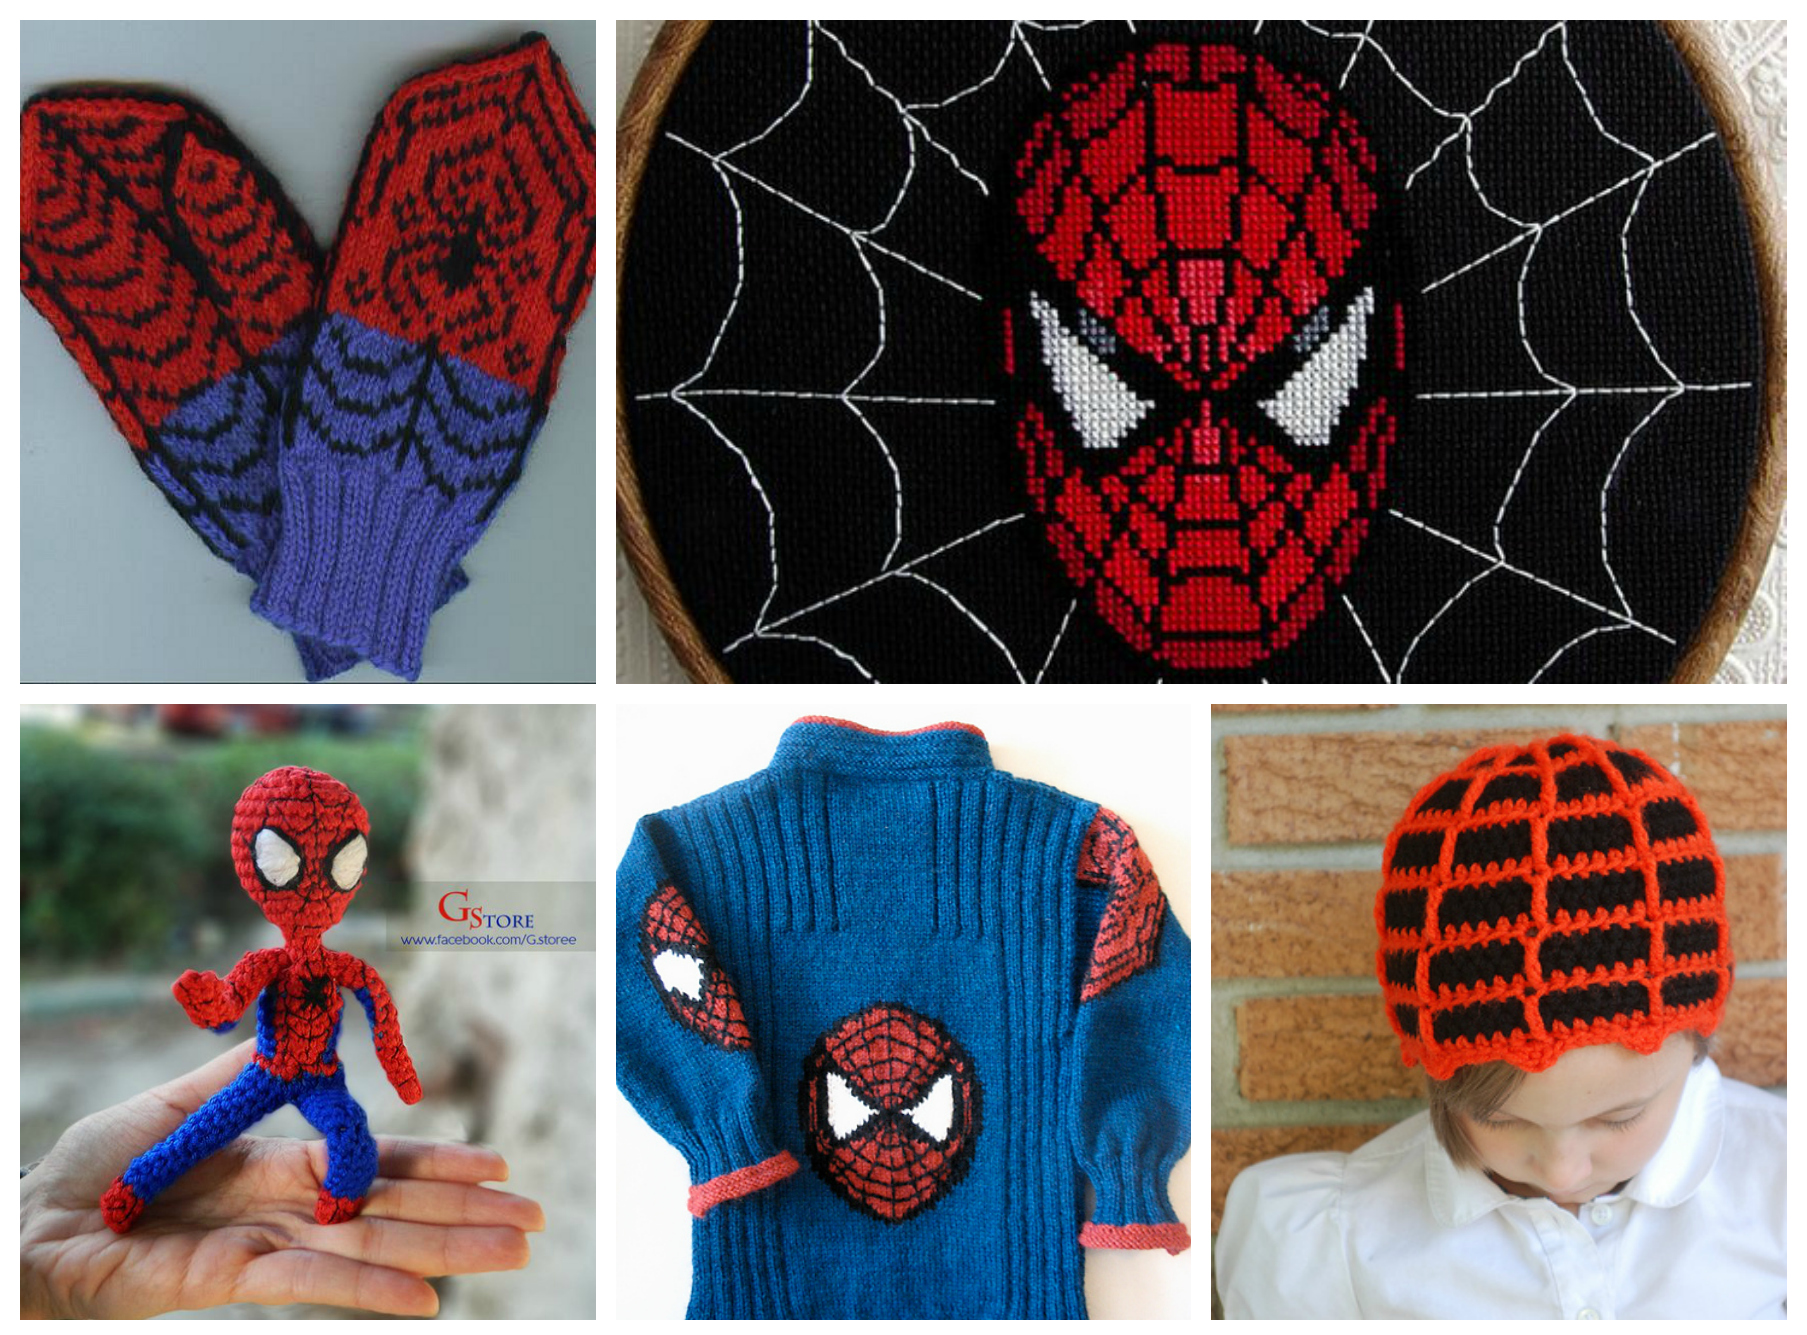 10 Of The Best Knit Crochet Projects Patterns Tutorials